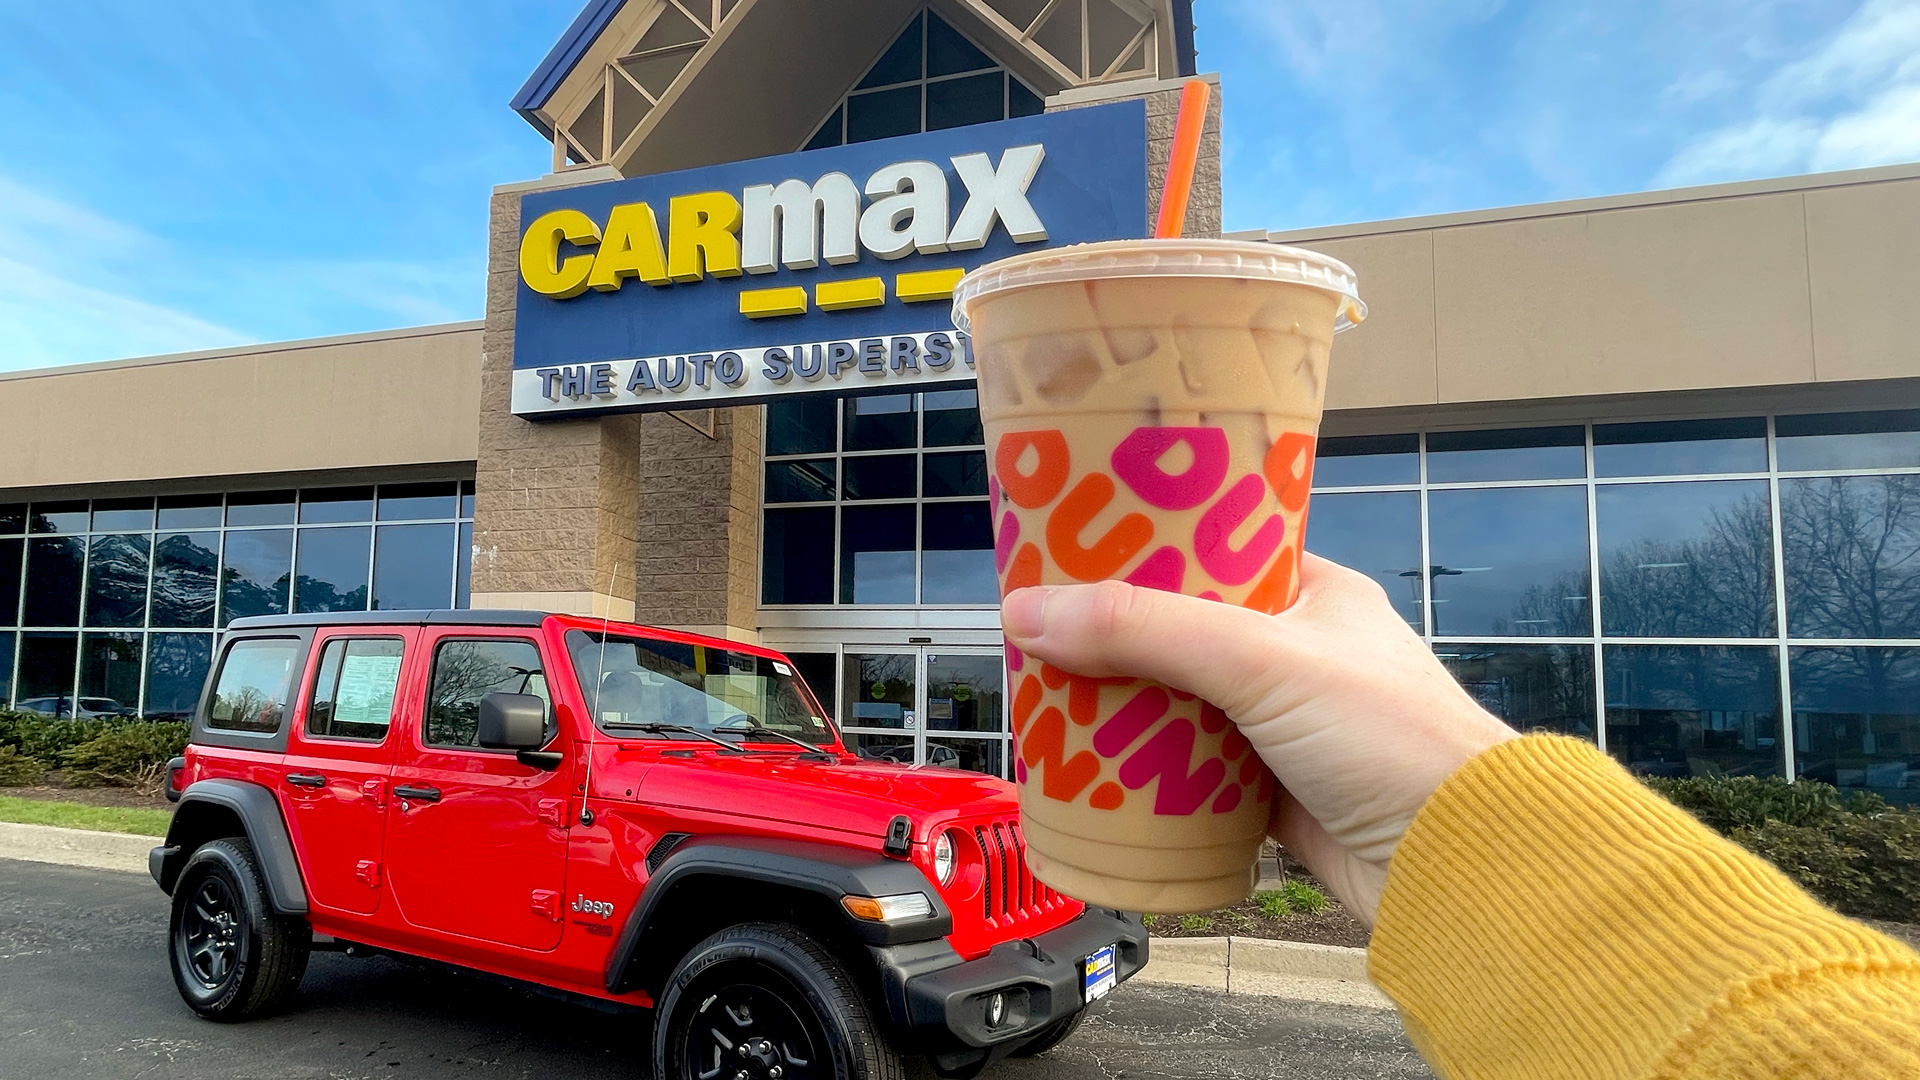 From now until May 16, the brand's 24 hour test drive comes with a $10 Dunkin' gift card.